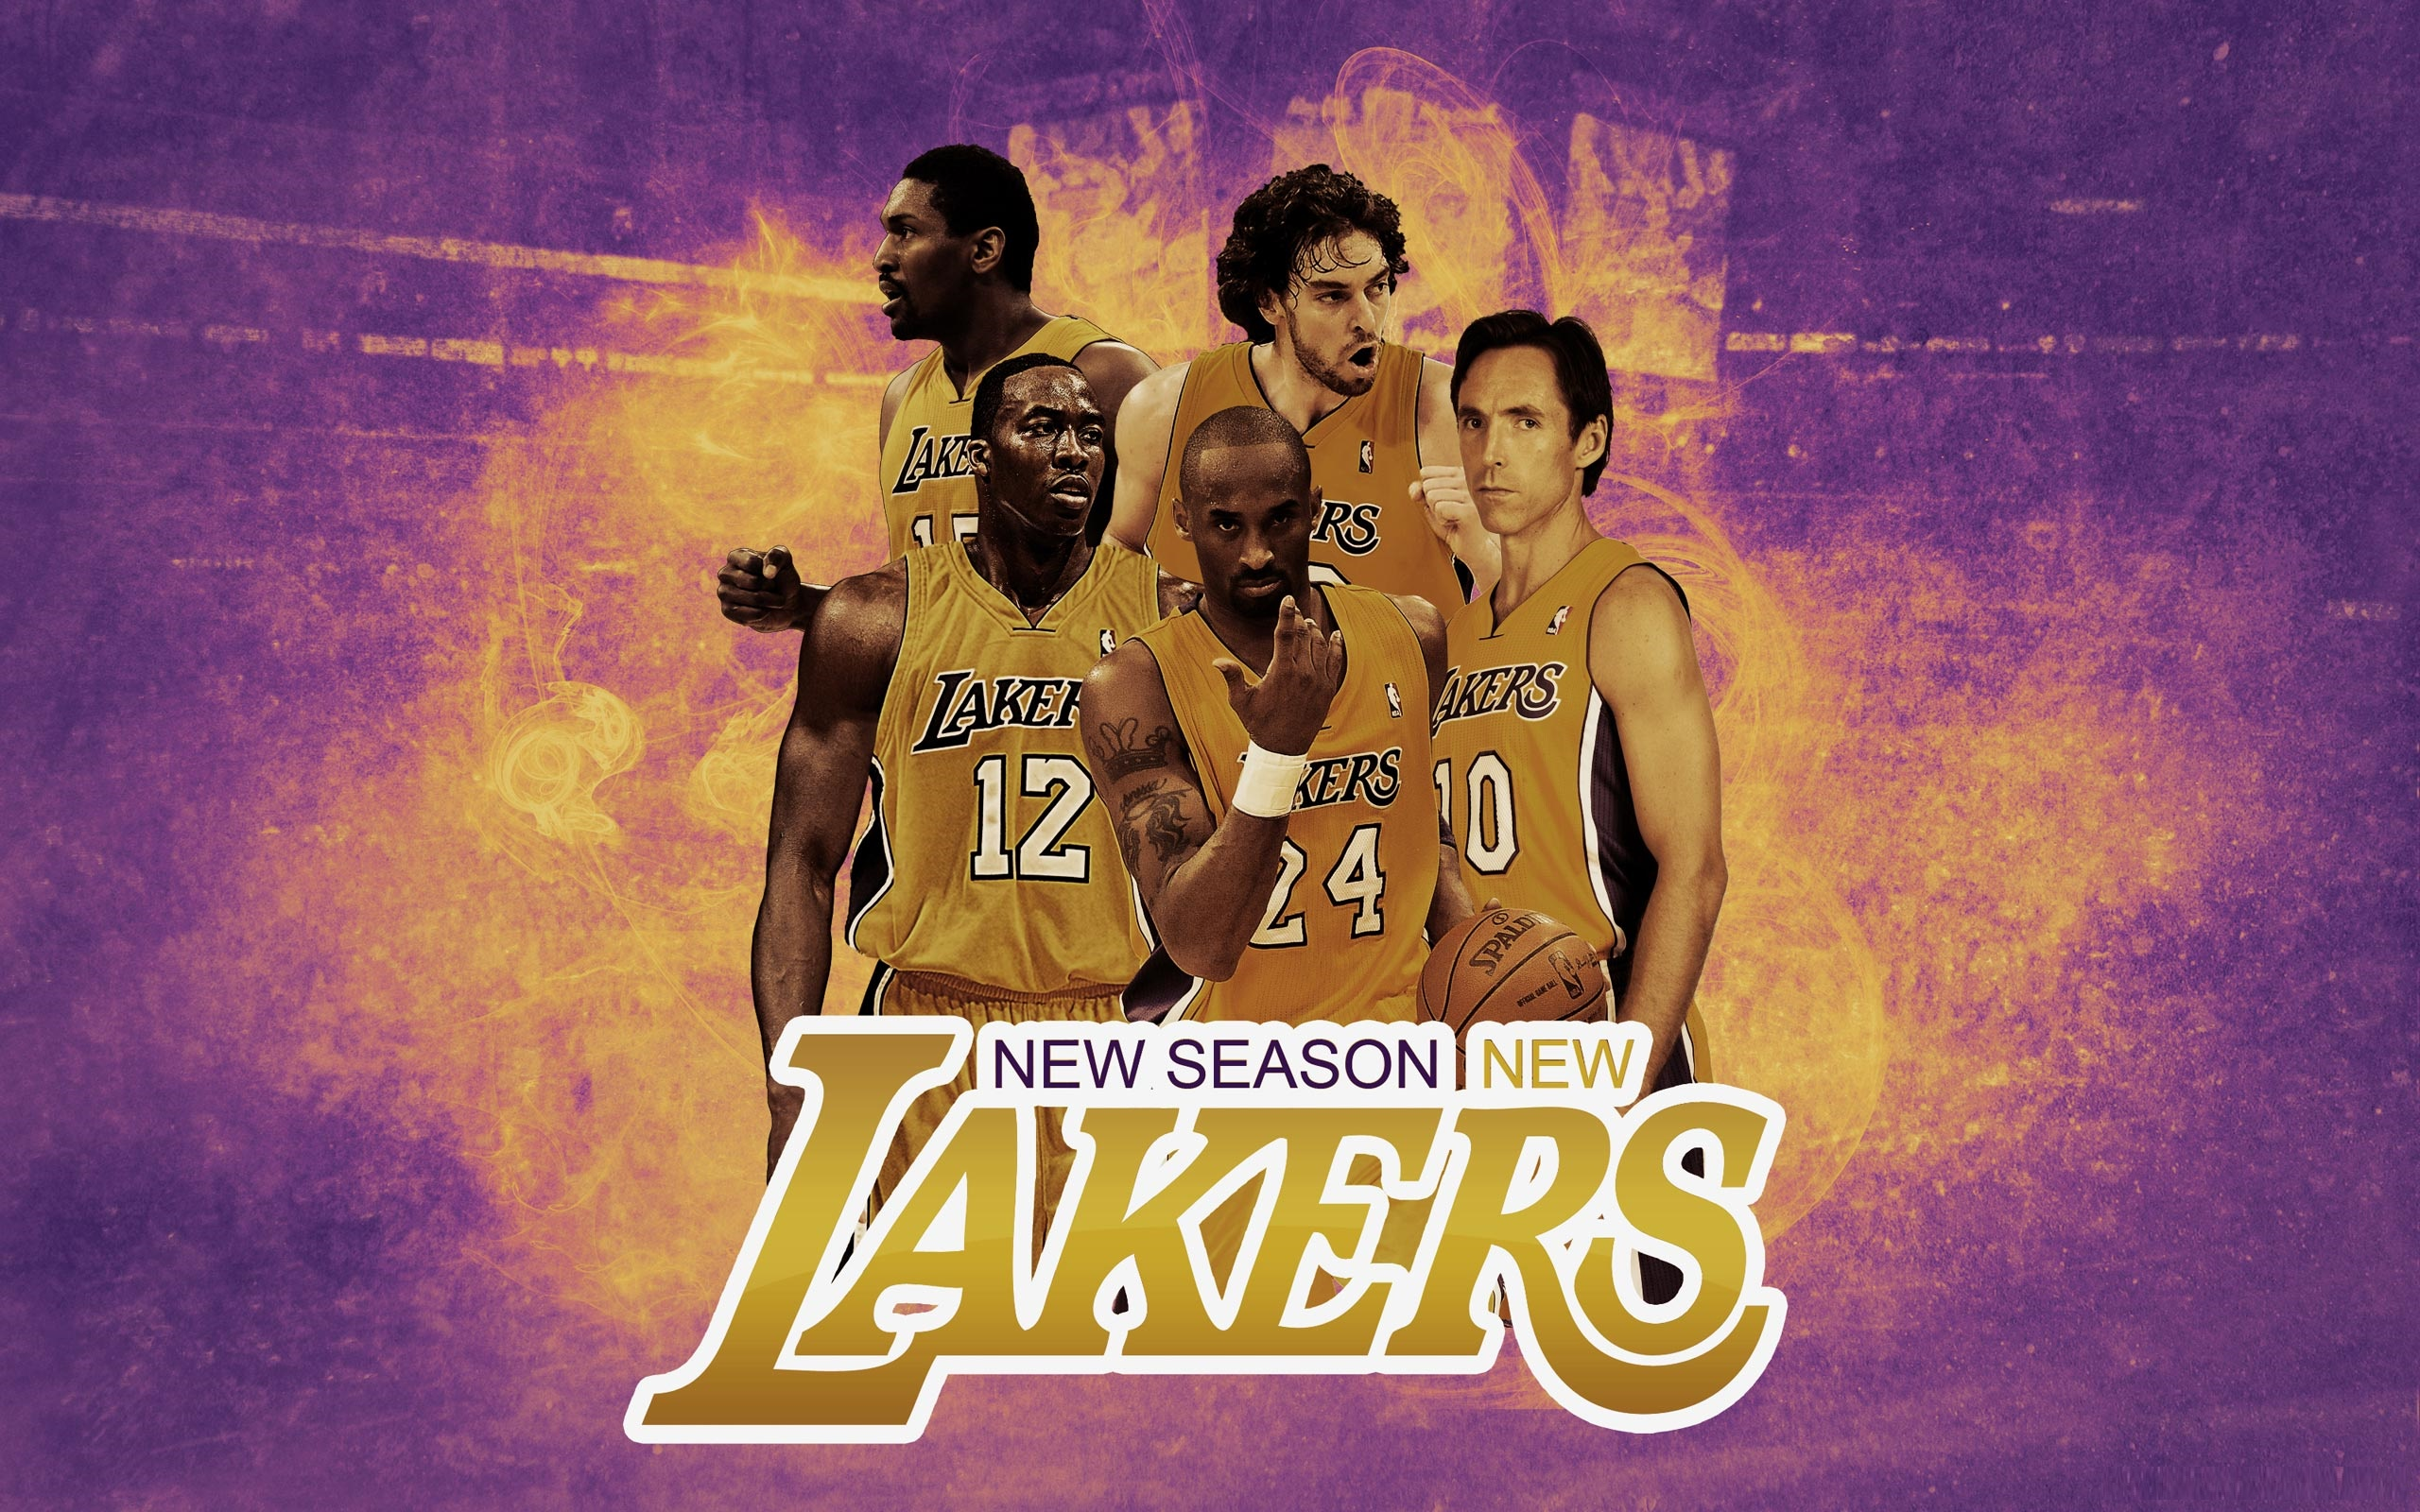 Los Angeles Lakers Wallpaper Hd The Los Angeles Lakers Backgrounds Collection Pixelstalk Net